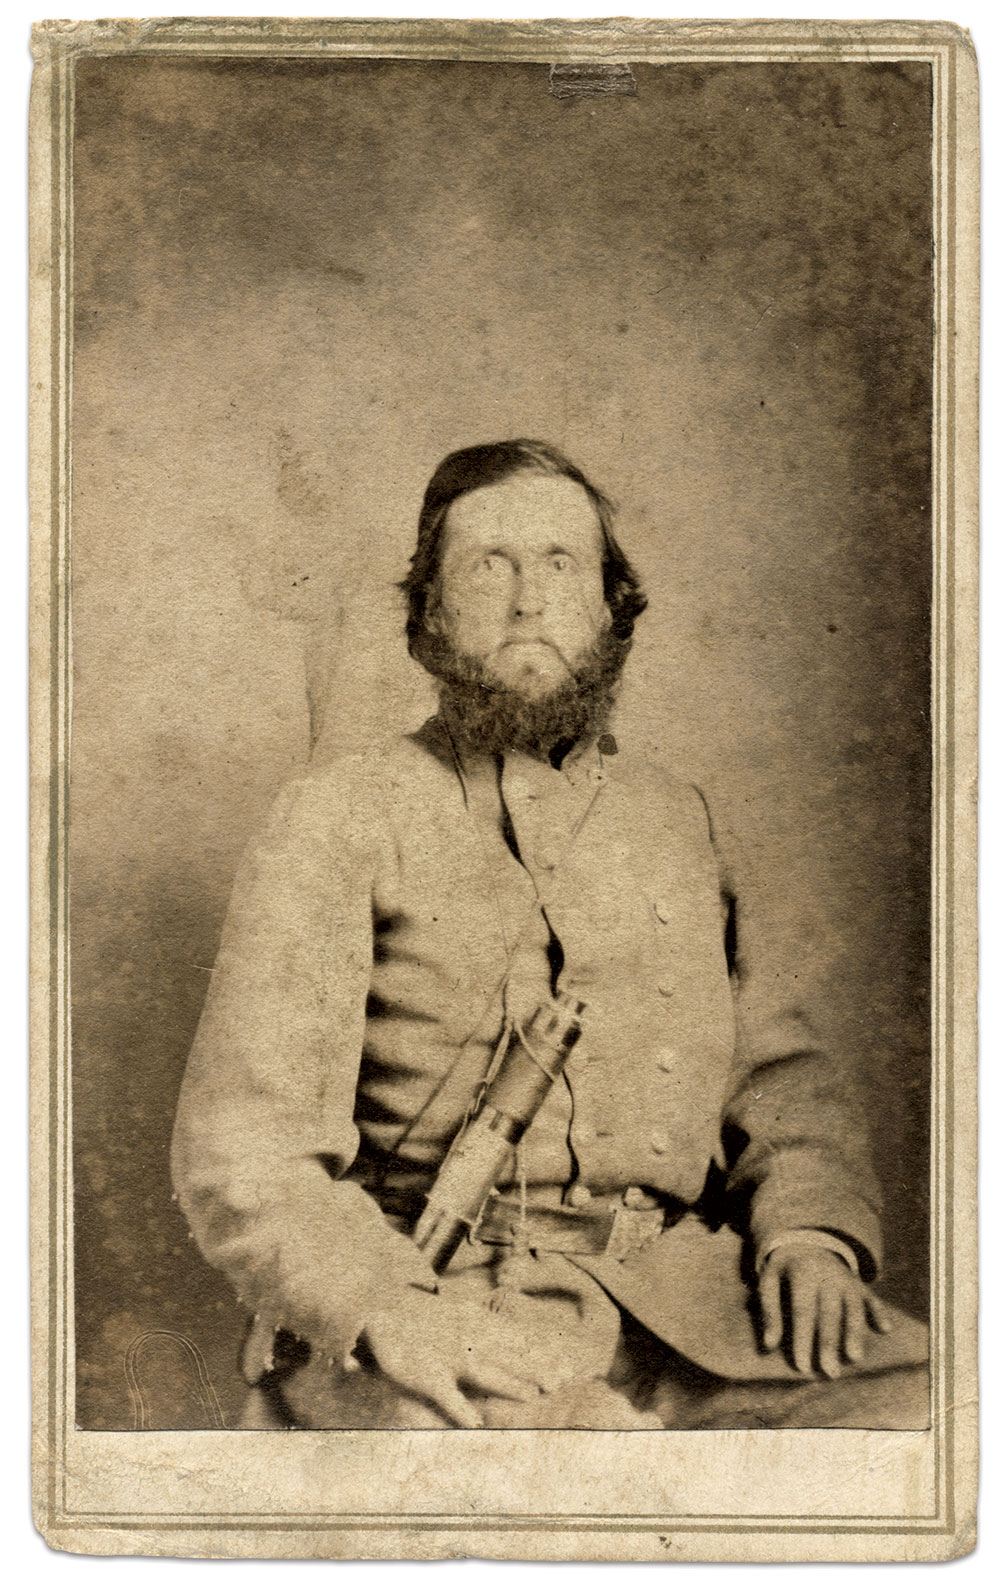 Carte de visite by Ward & Shull, possibly of Danville, Ky. Phil McCoy Collection.